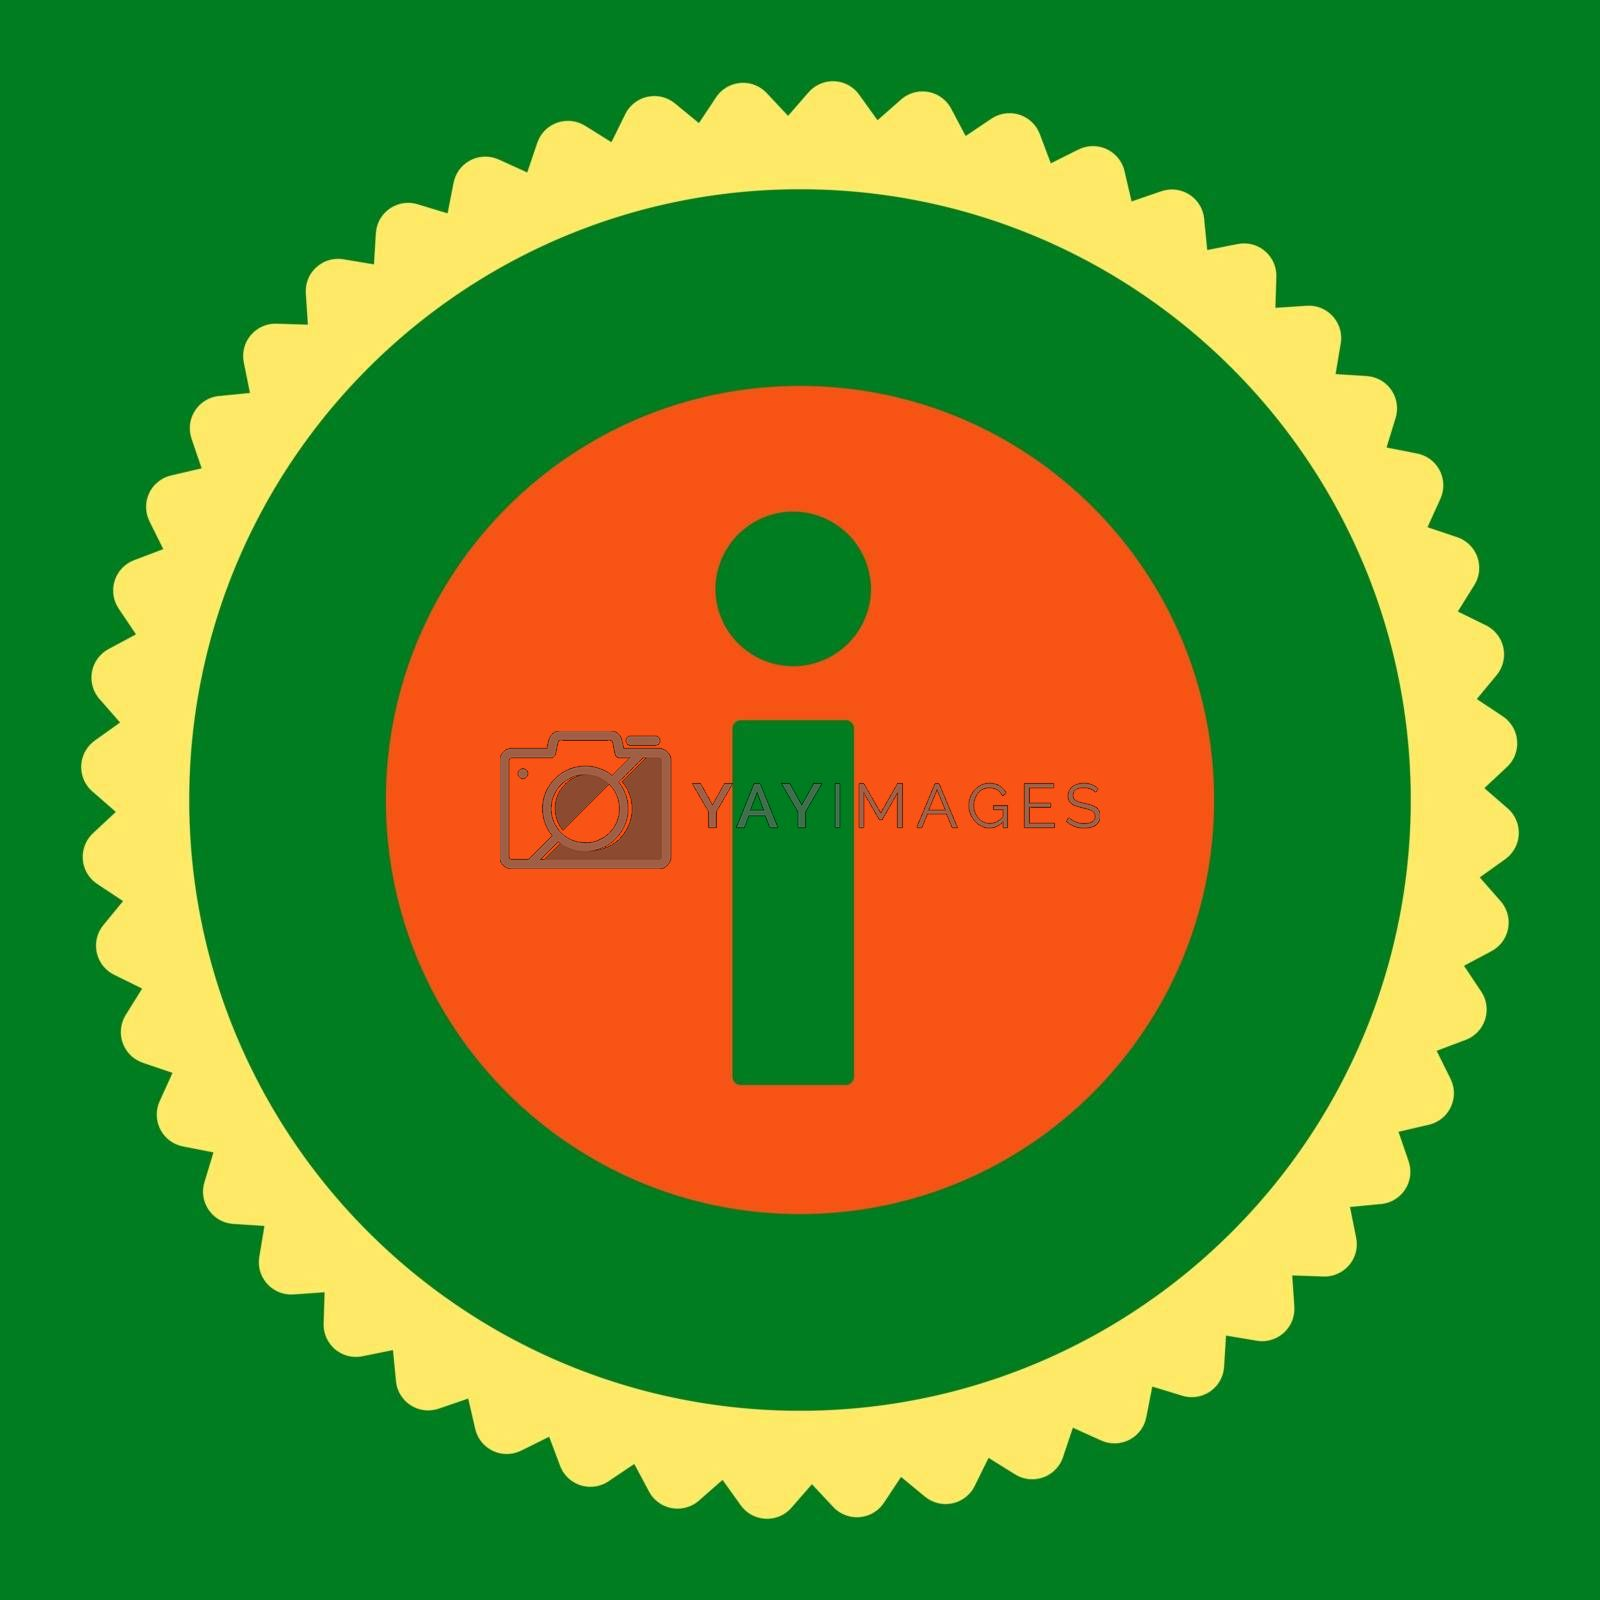 Information flat orange and yellow colors round stamp icon by Aha-Soft